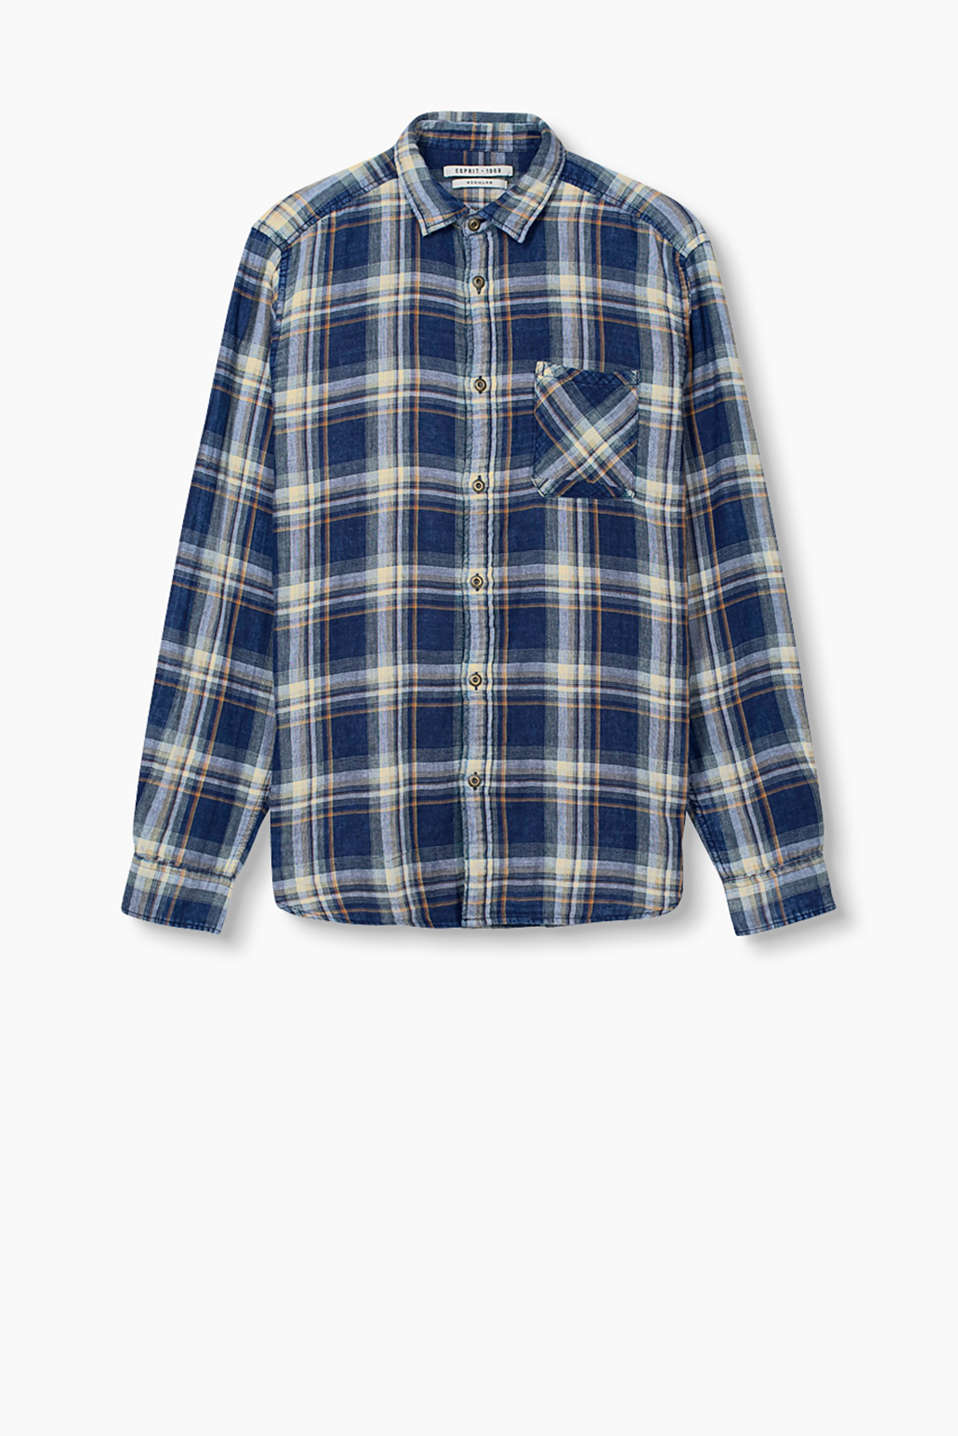 Shirt with a breast pocket and tartan pattern